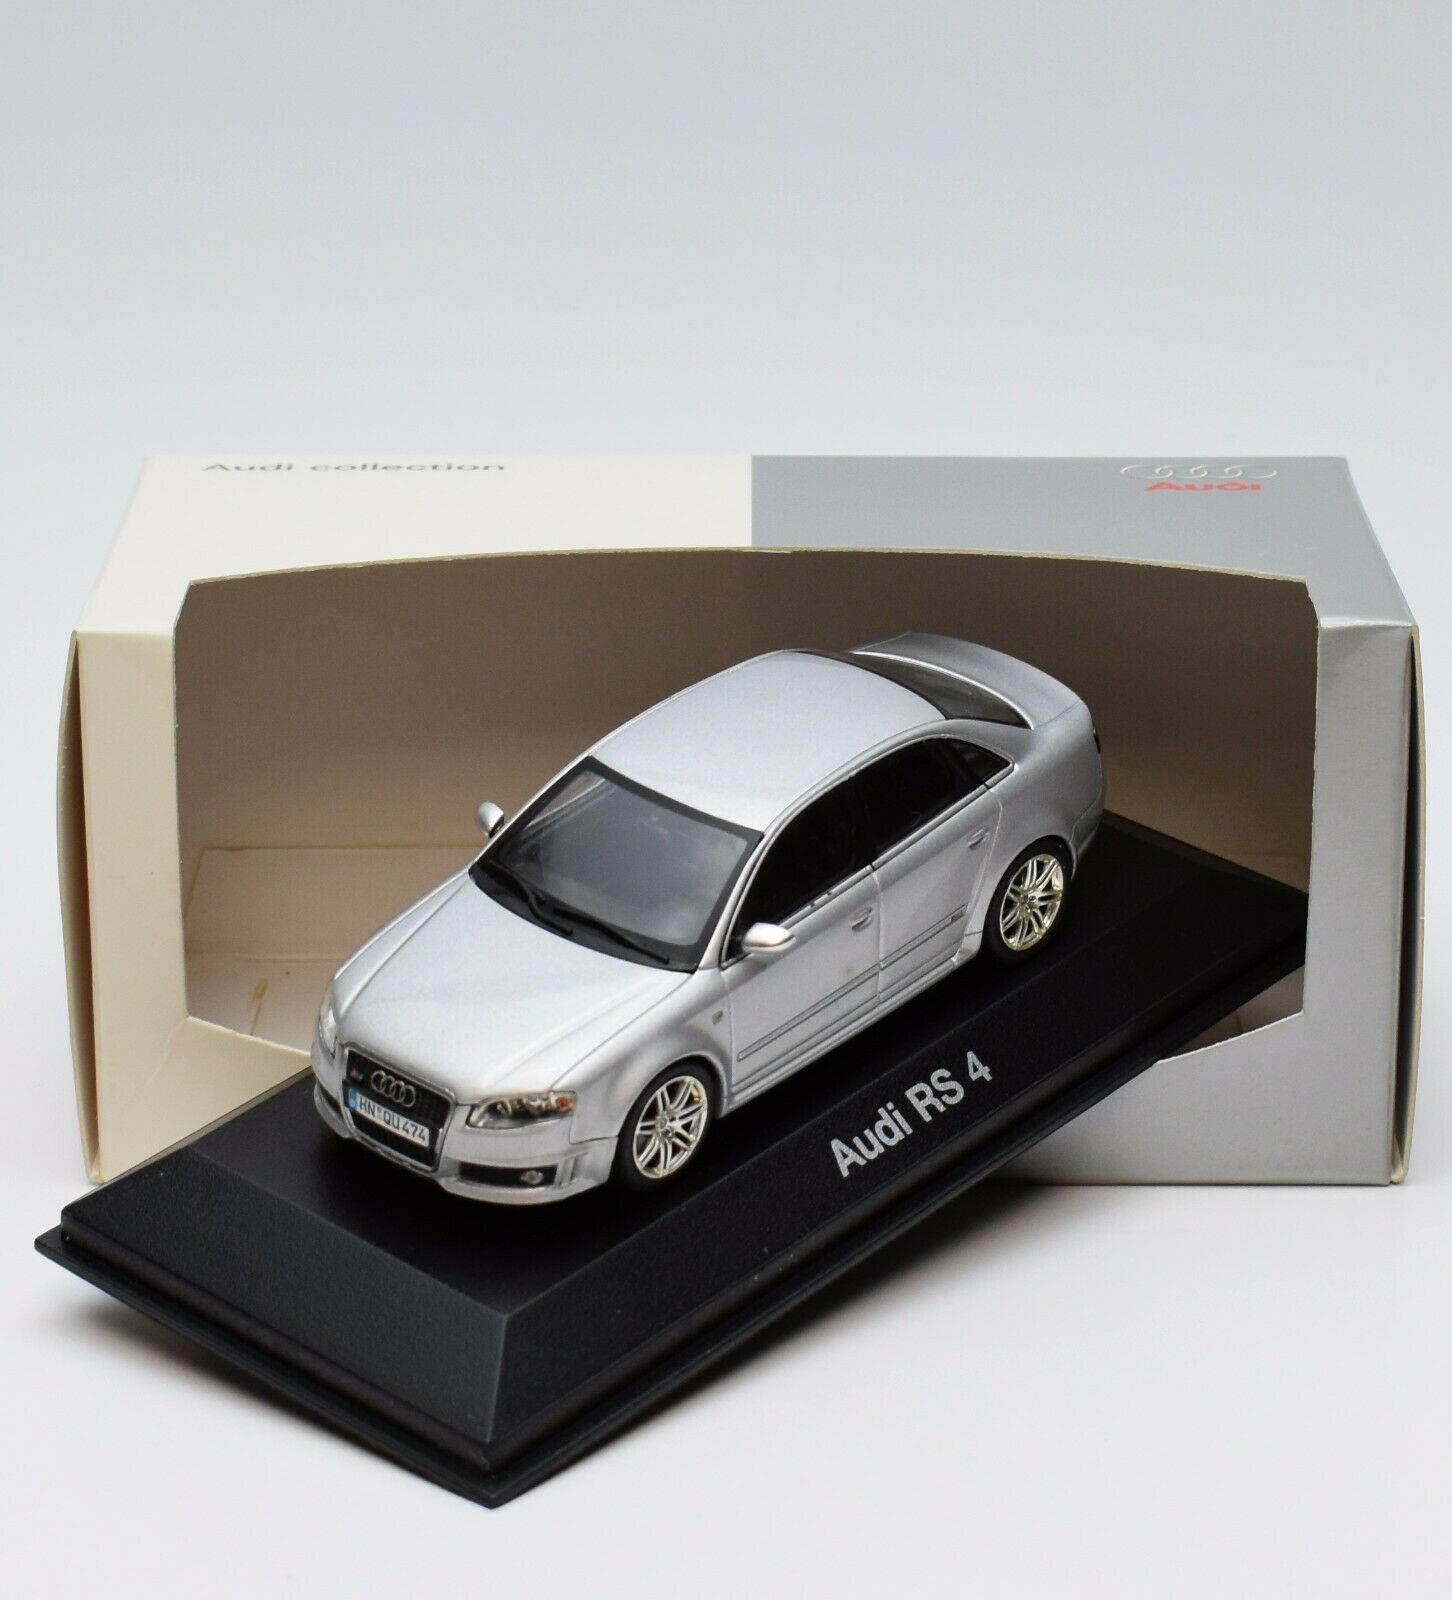 Minichamps 5010509113 Audi RS 4 Limousine Bj.2005 in silber, 1 43 , OVP, 94 17